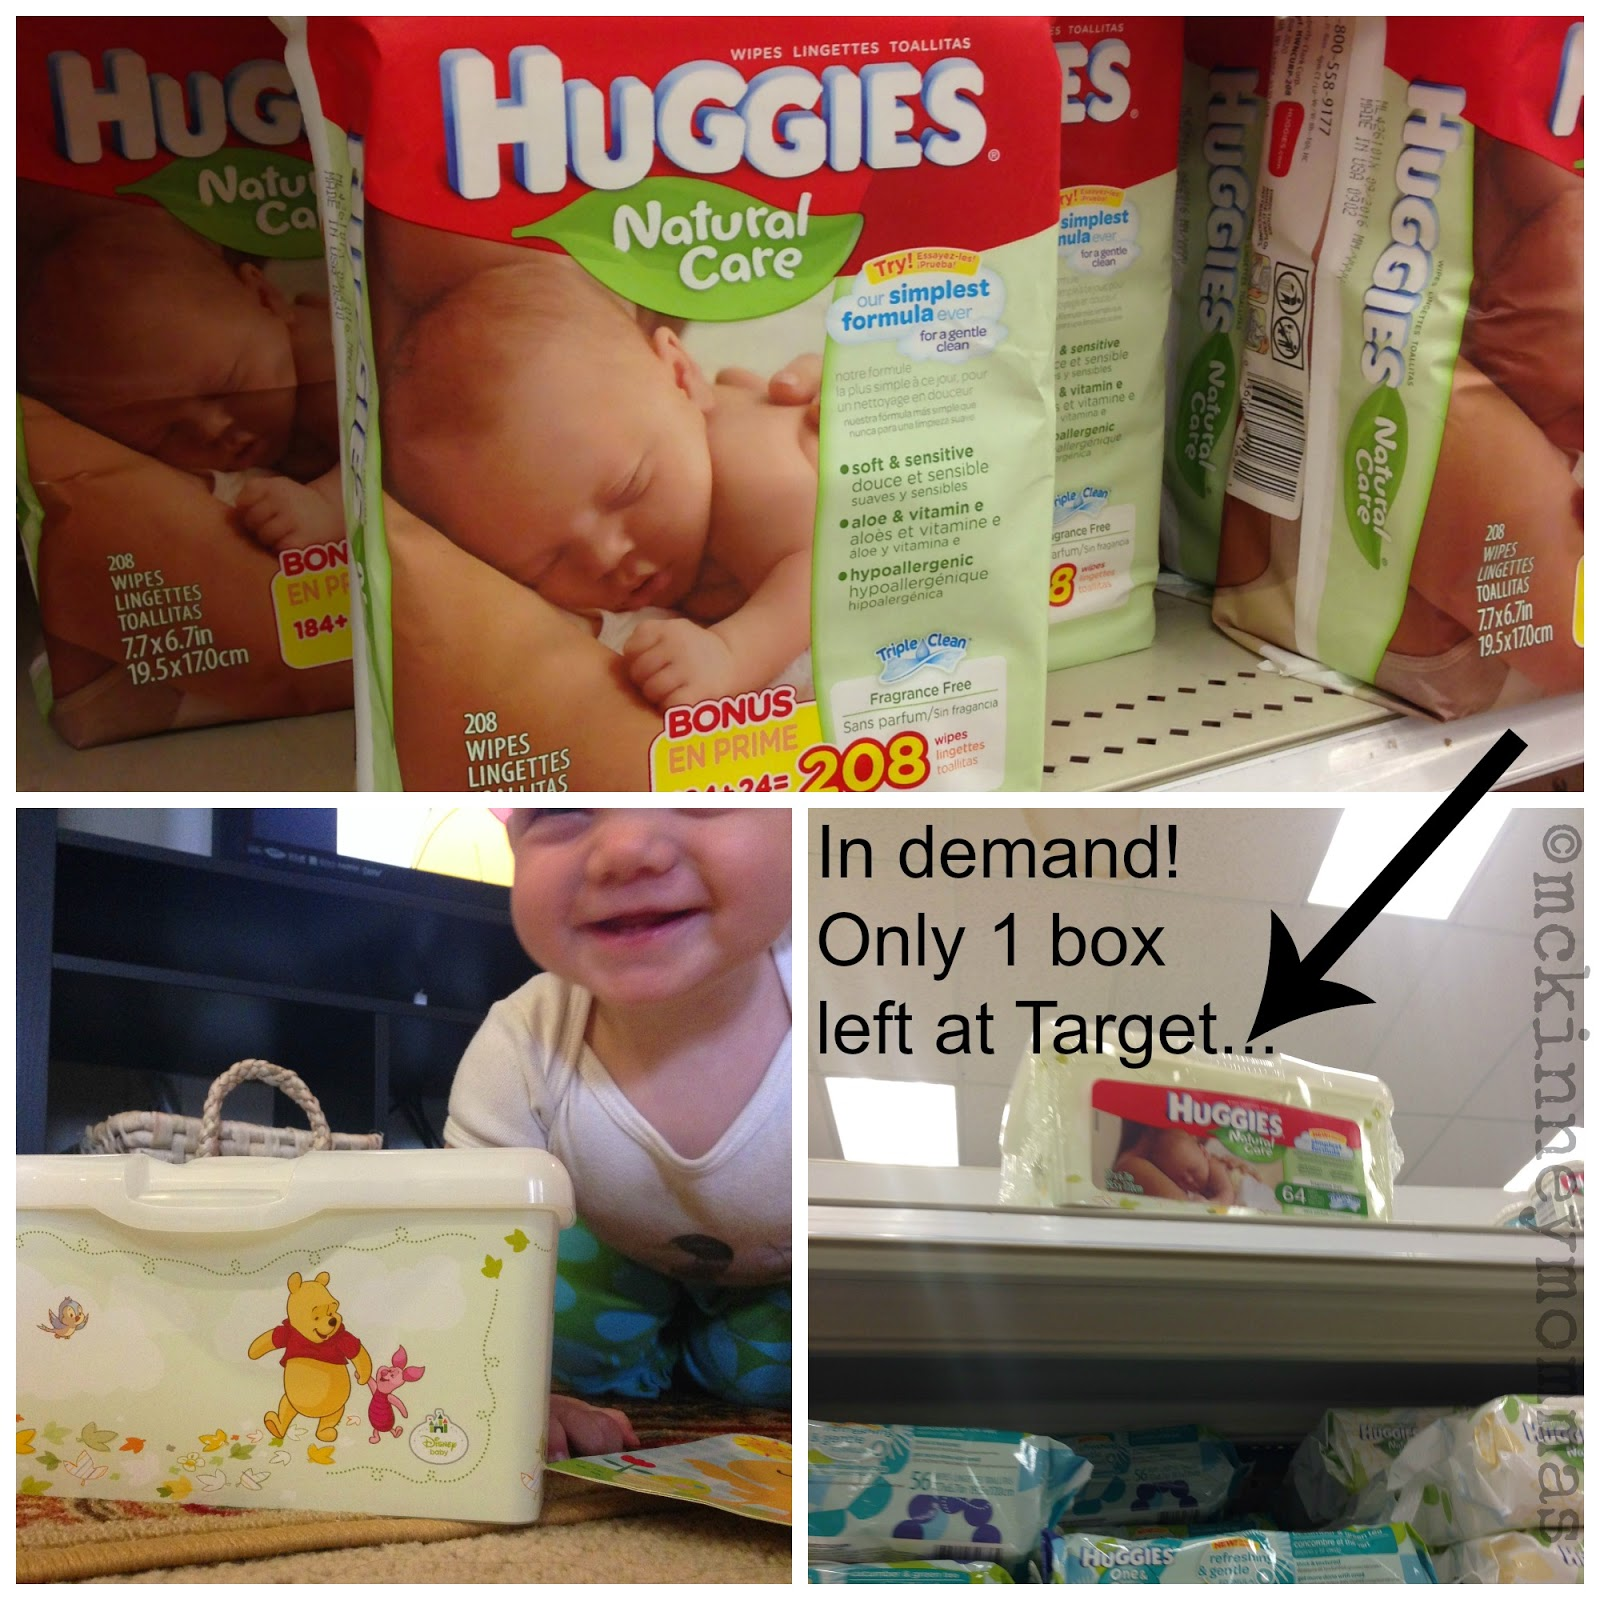 Huggies, Target, Natural Care Wipes